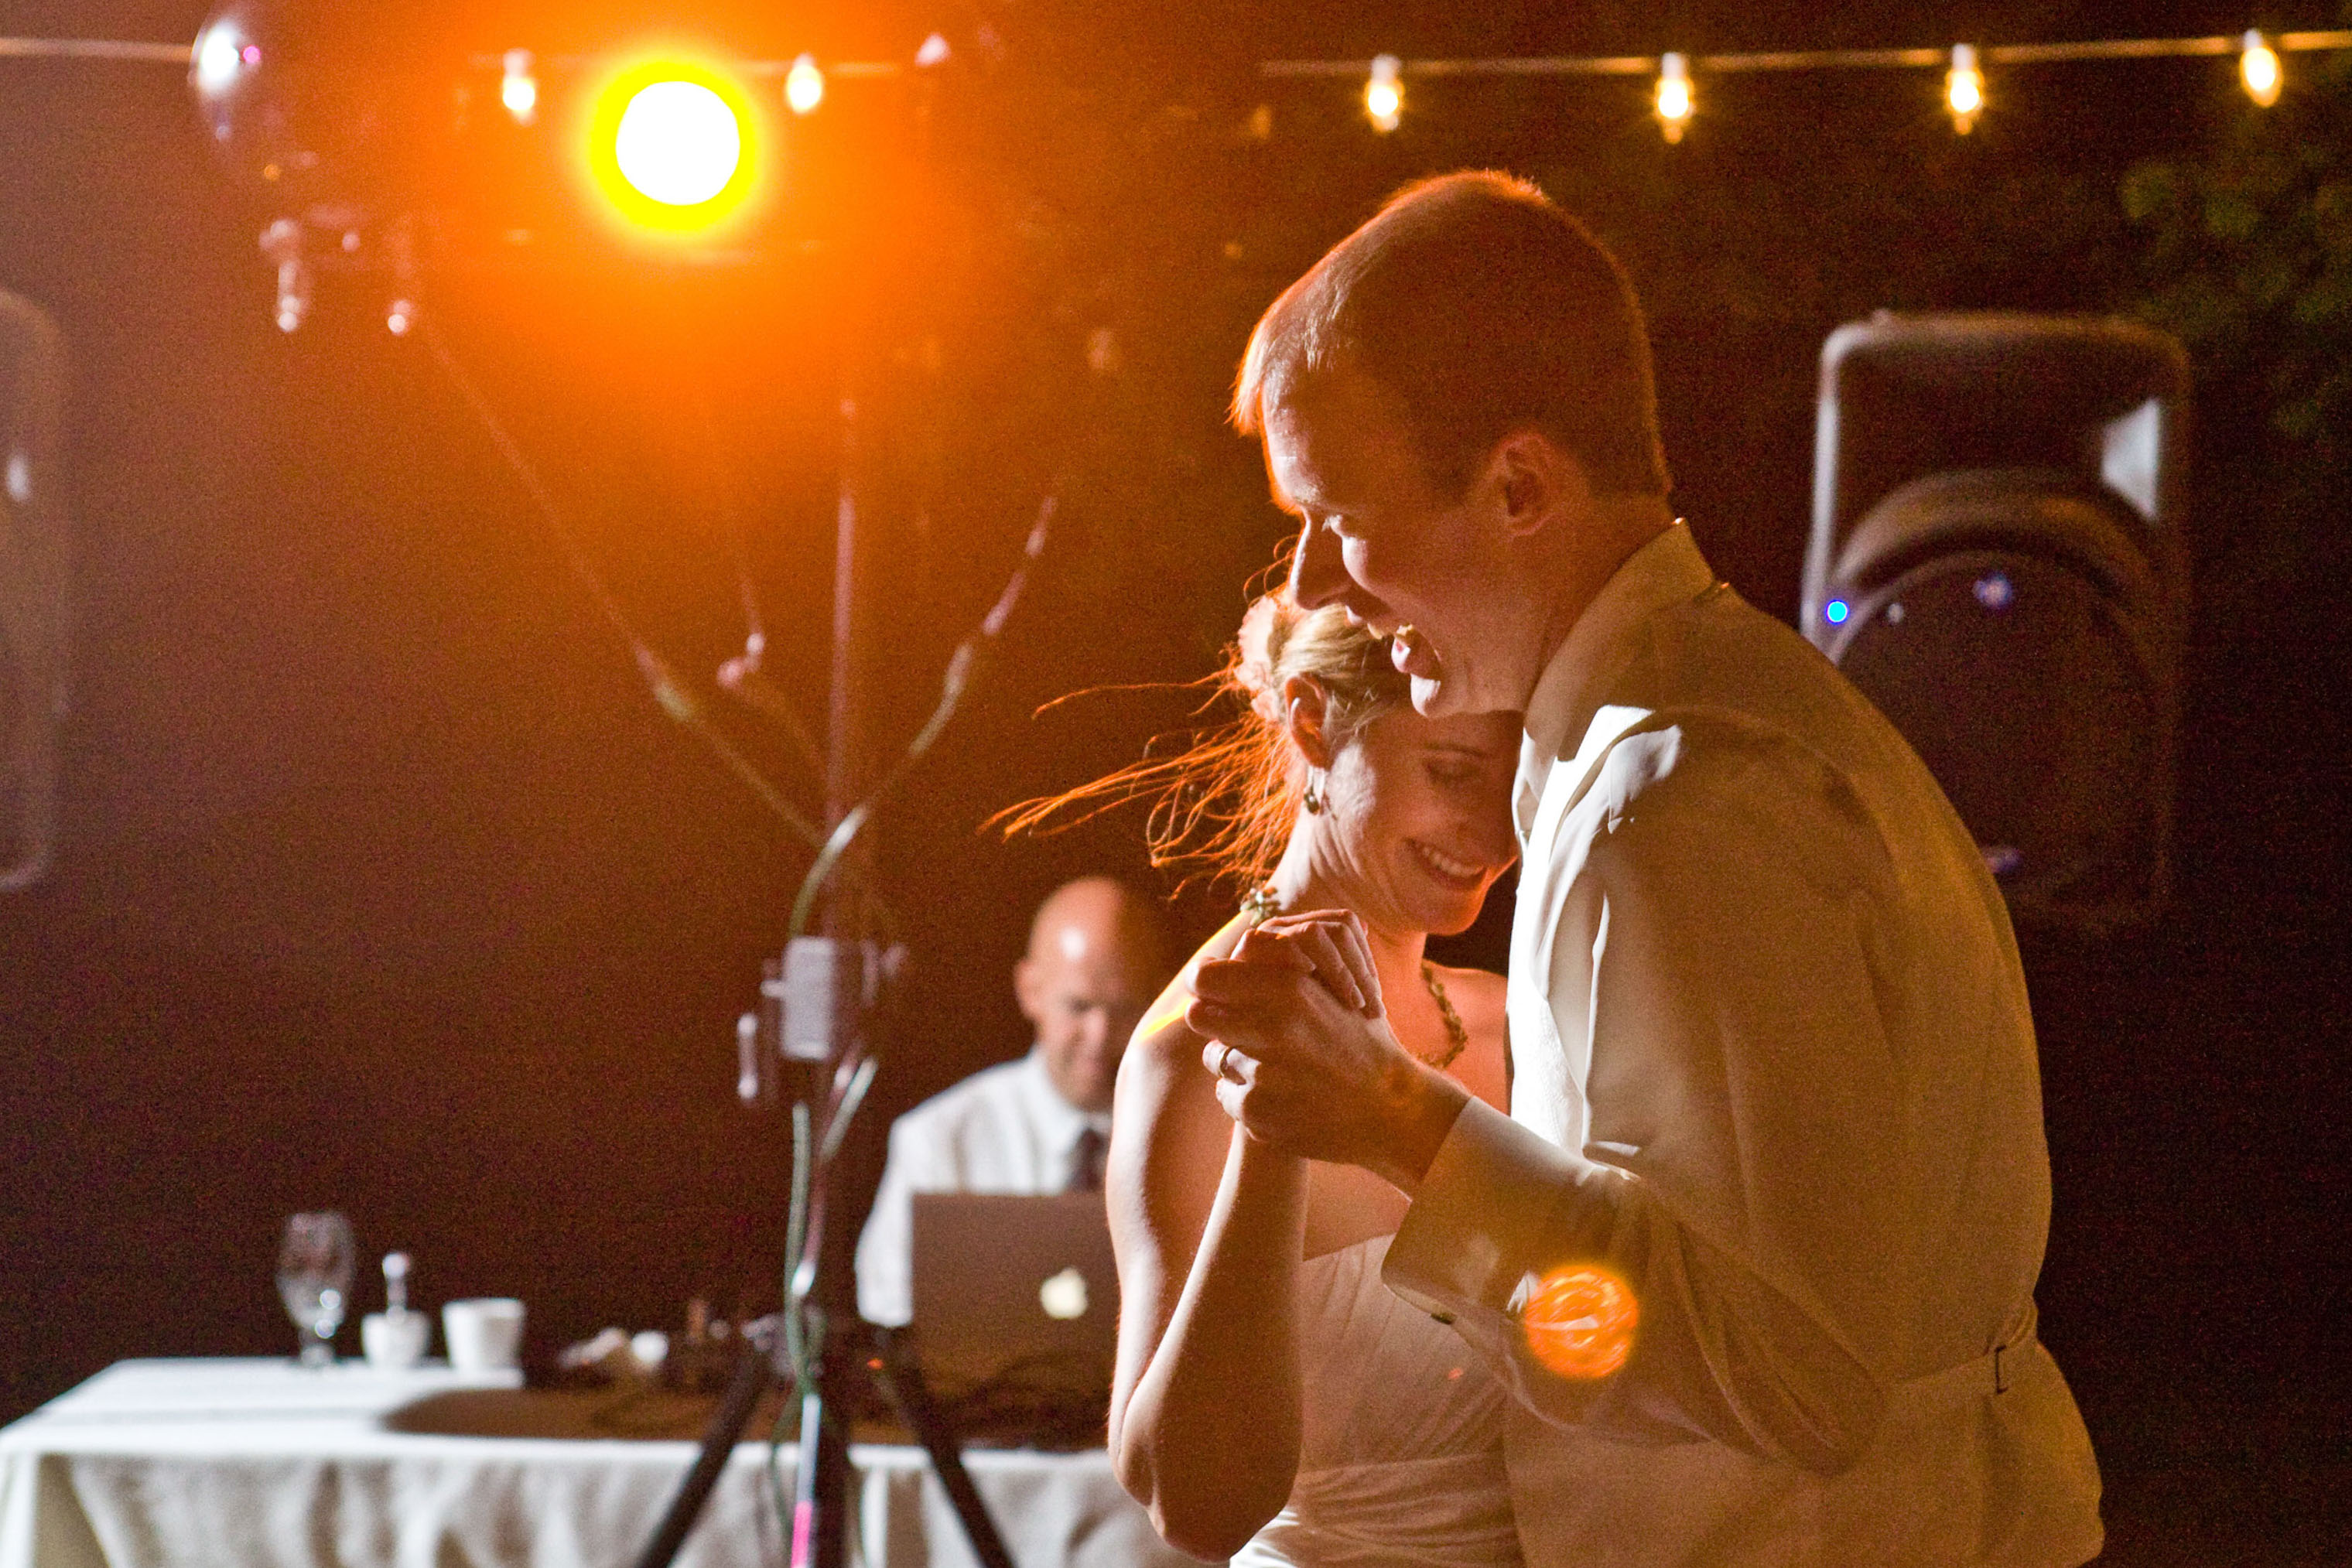 portland-wedding-dance-groom-bride